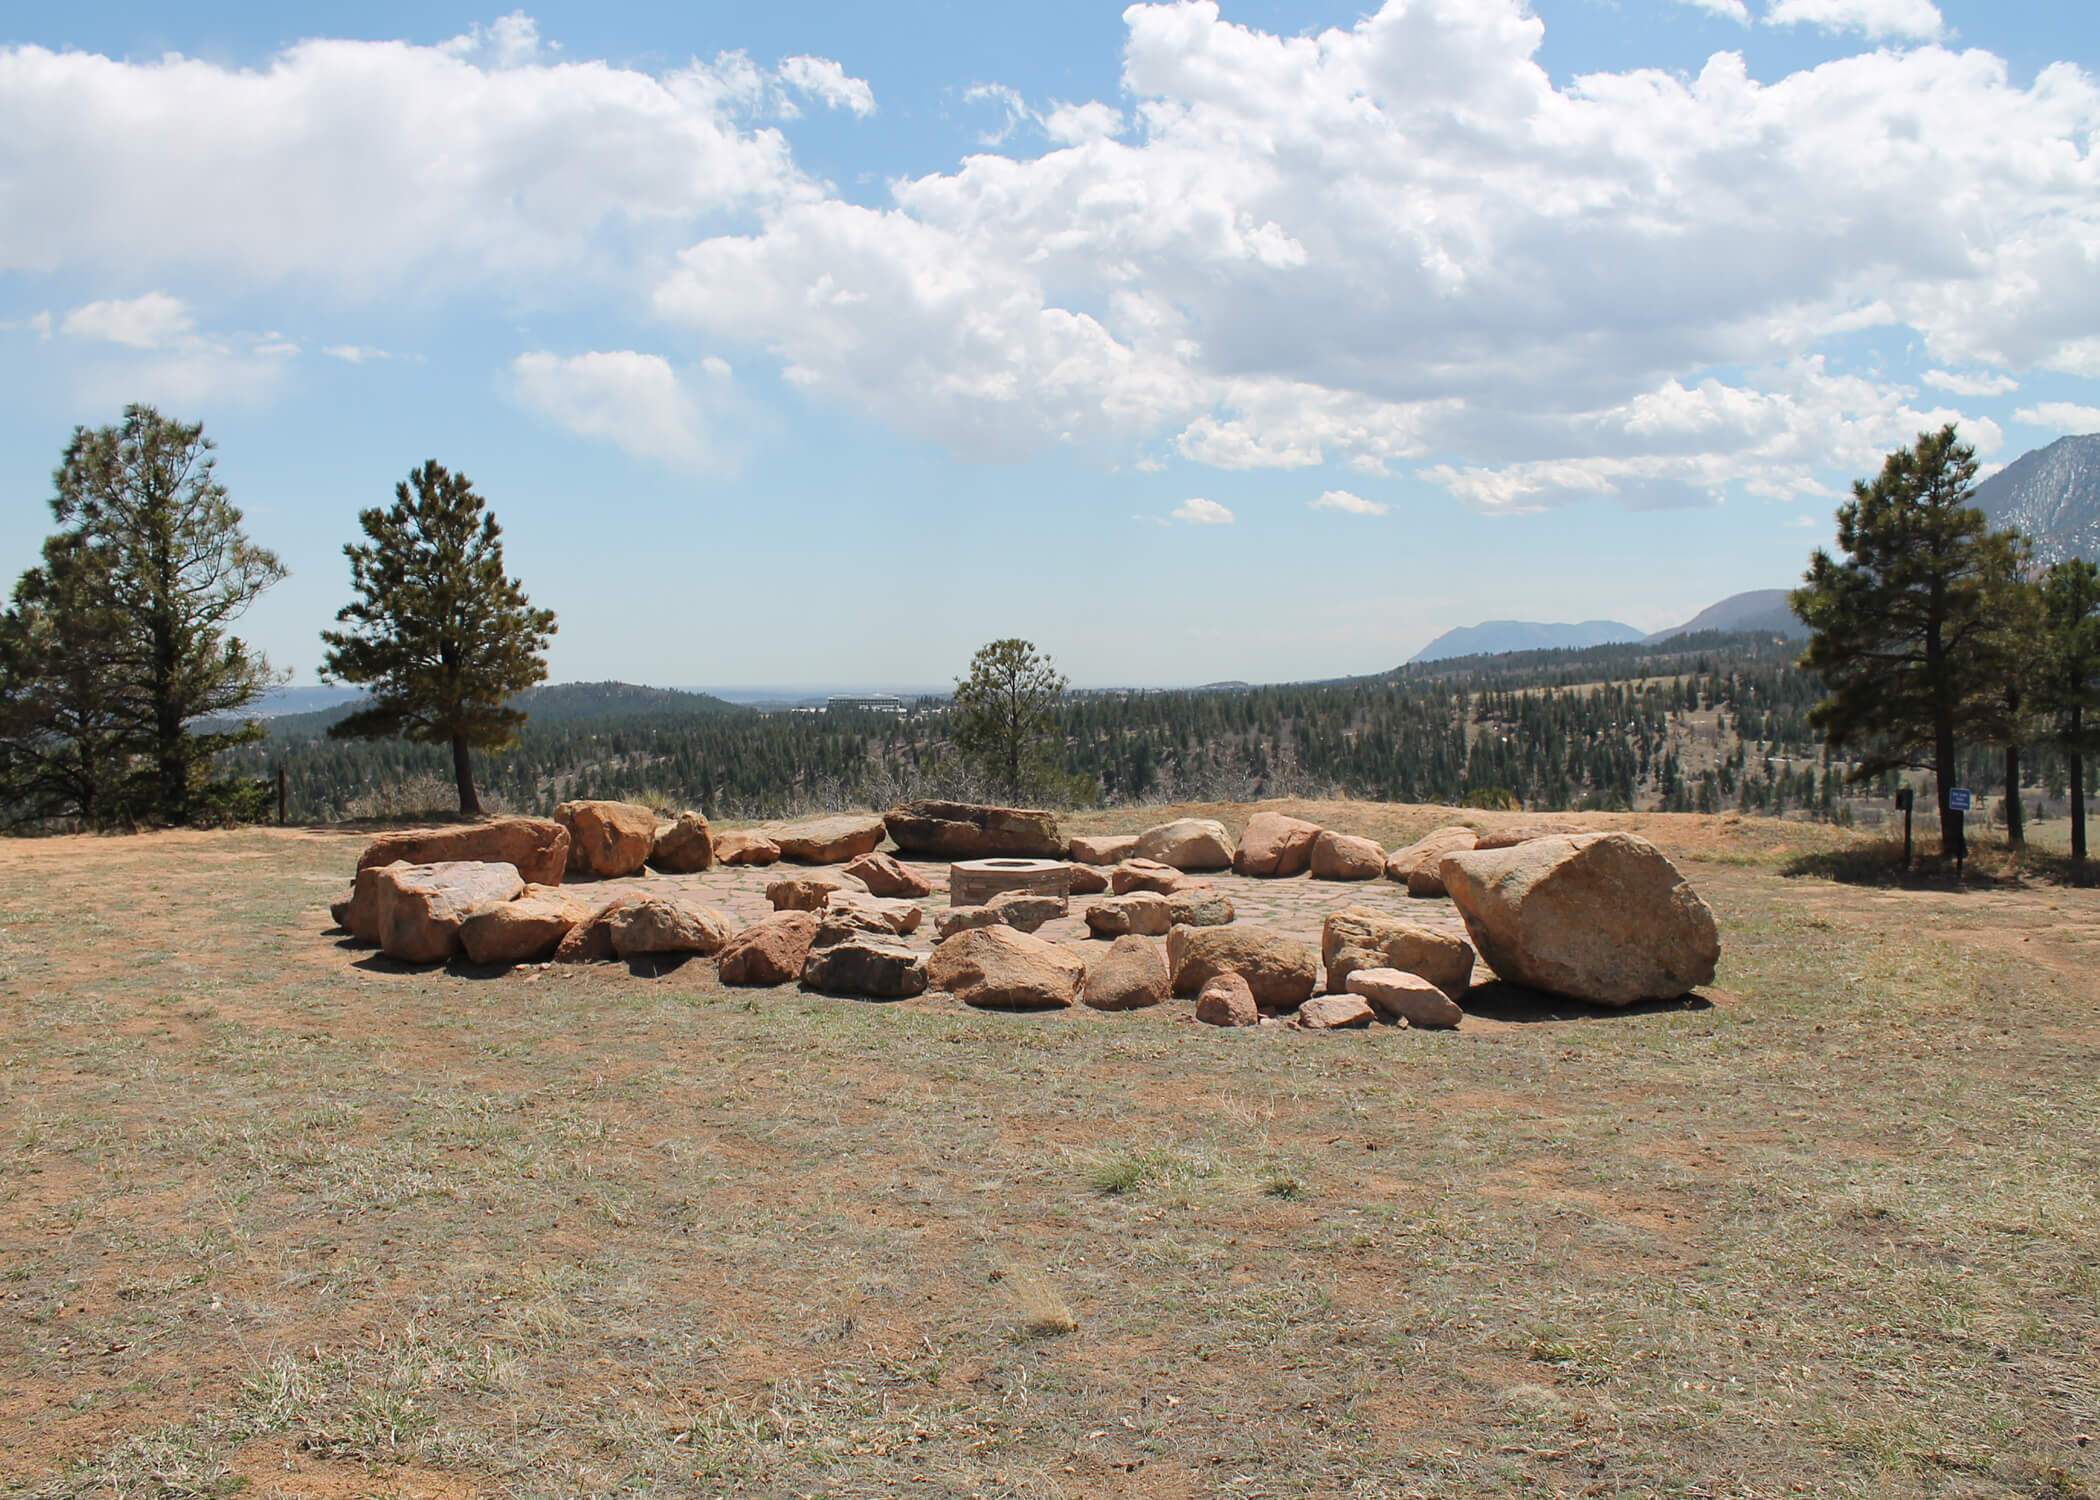 Image of rock circle for earth-centered spirituality community at the U.S. Air Force Academy